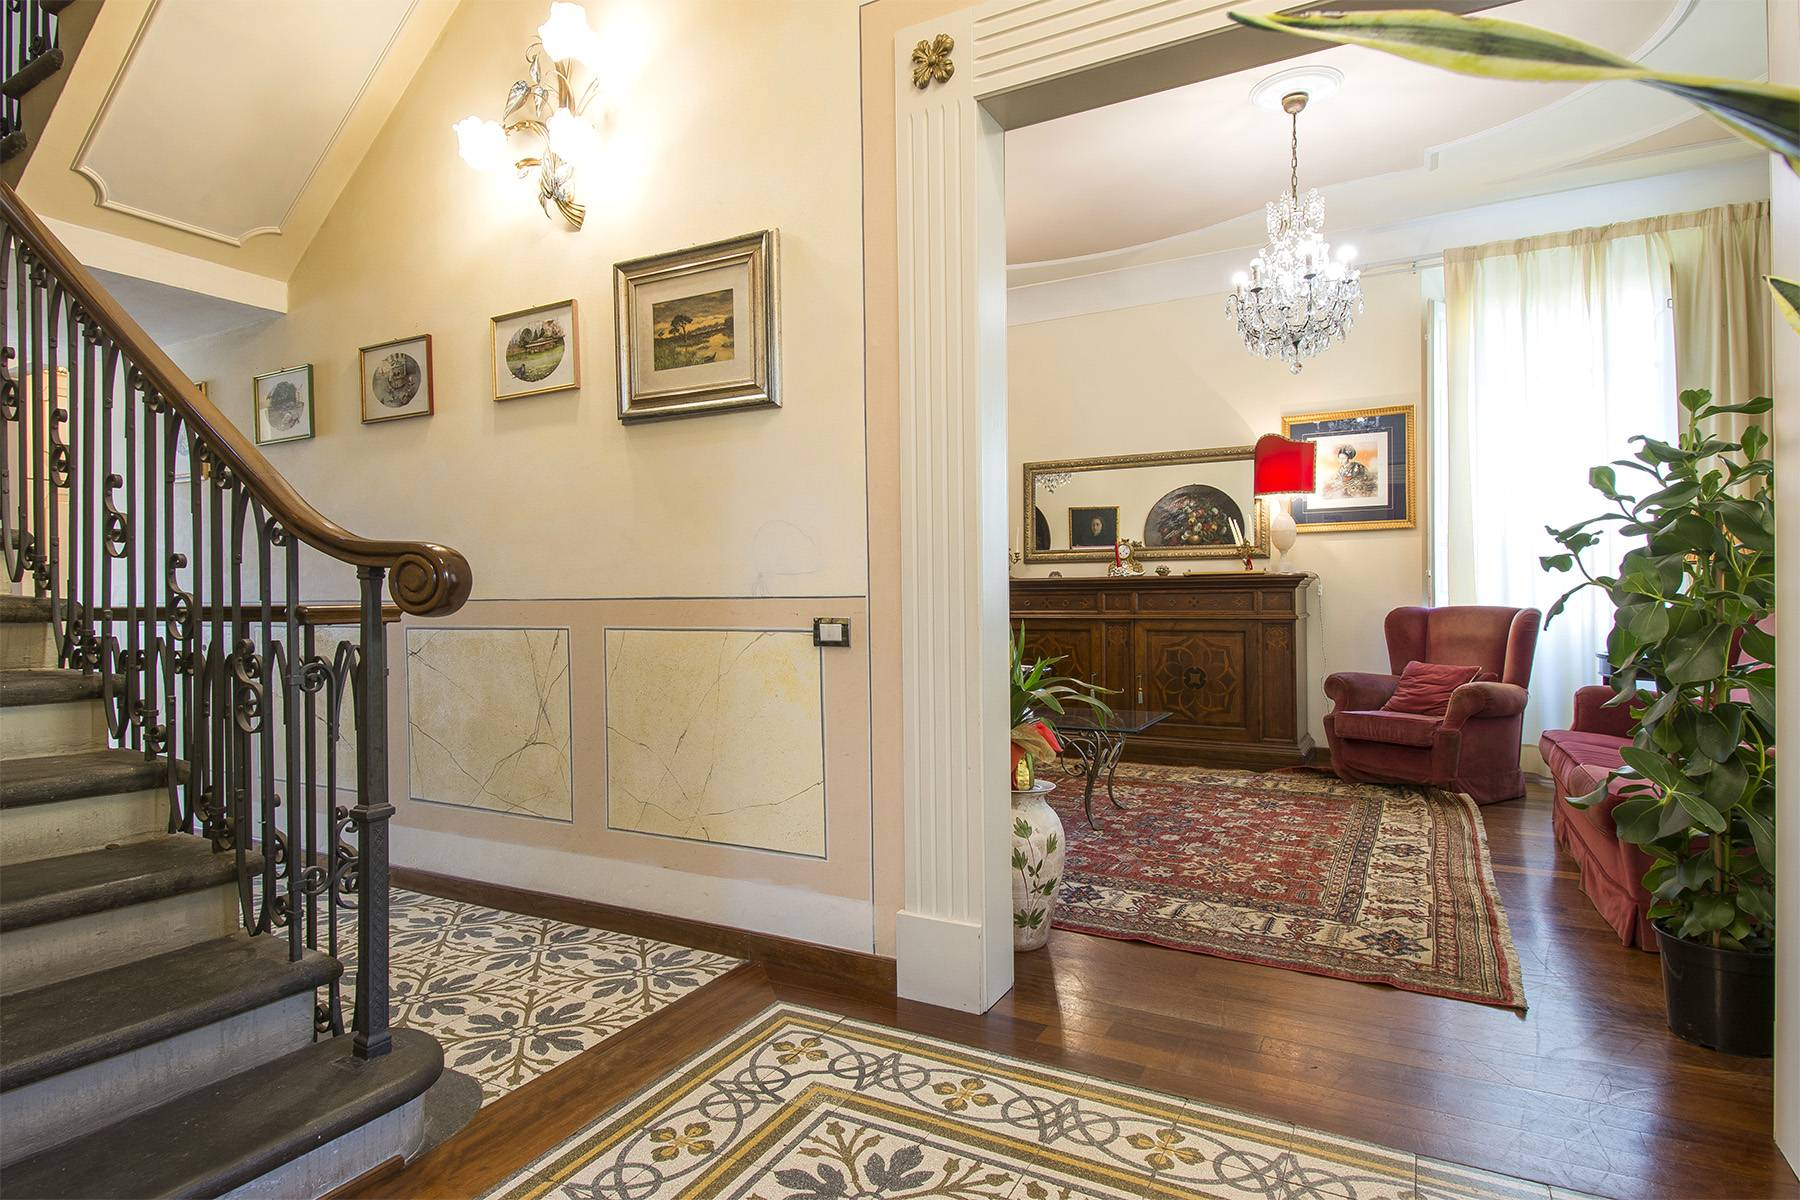 Art Nouveau Villa for sale in Lucca - 3